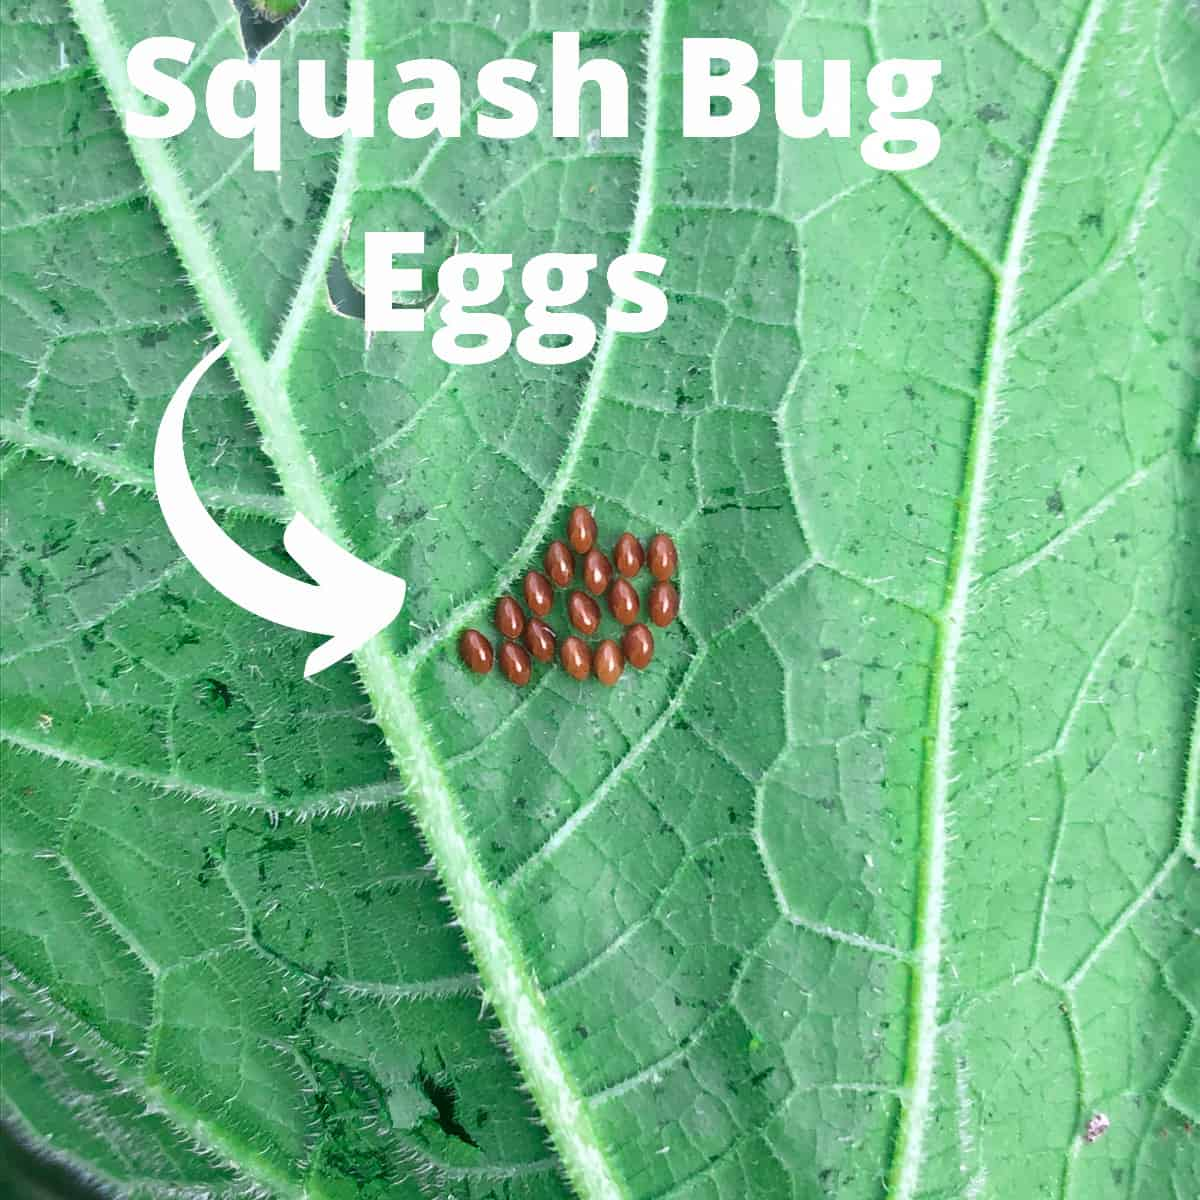 a cluster of squash bug eggs on the back of a green zucchini leaf